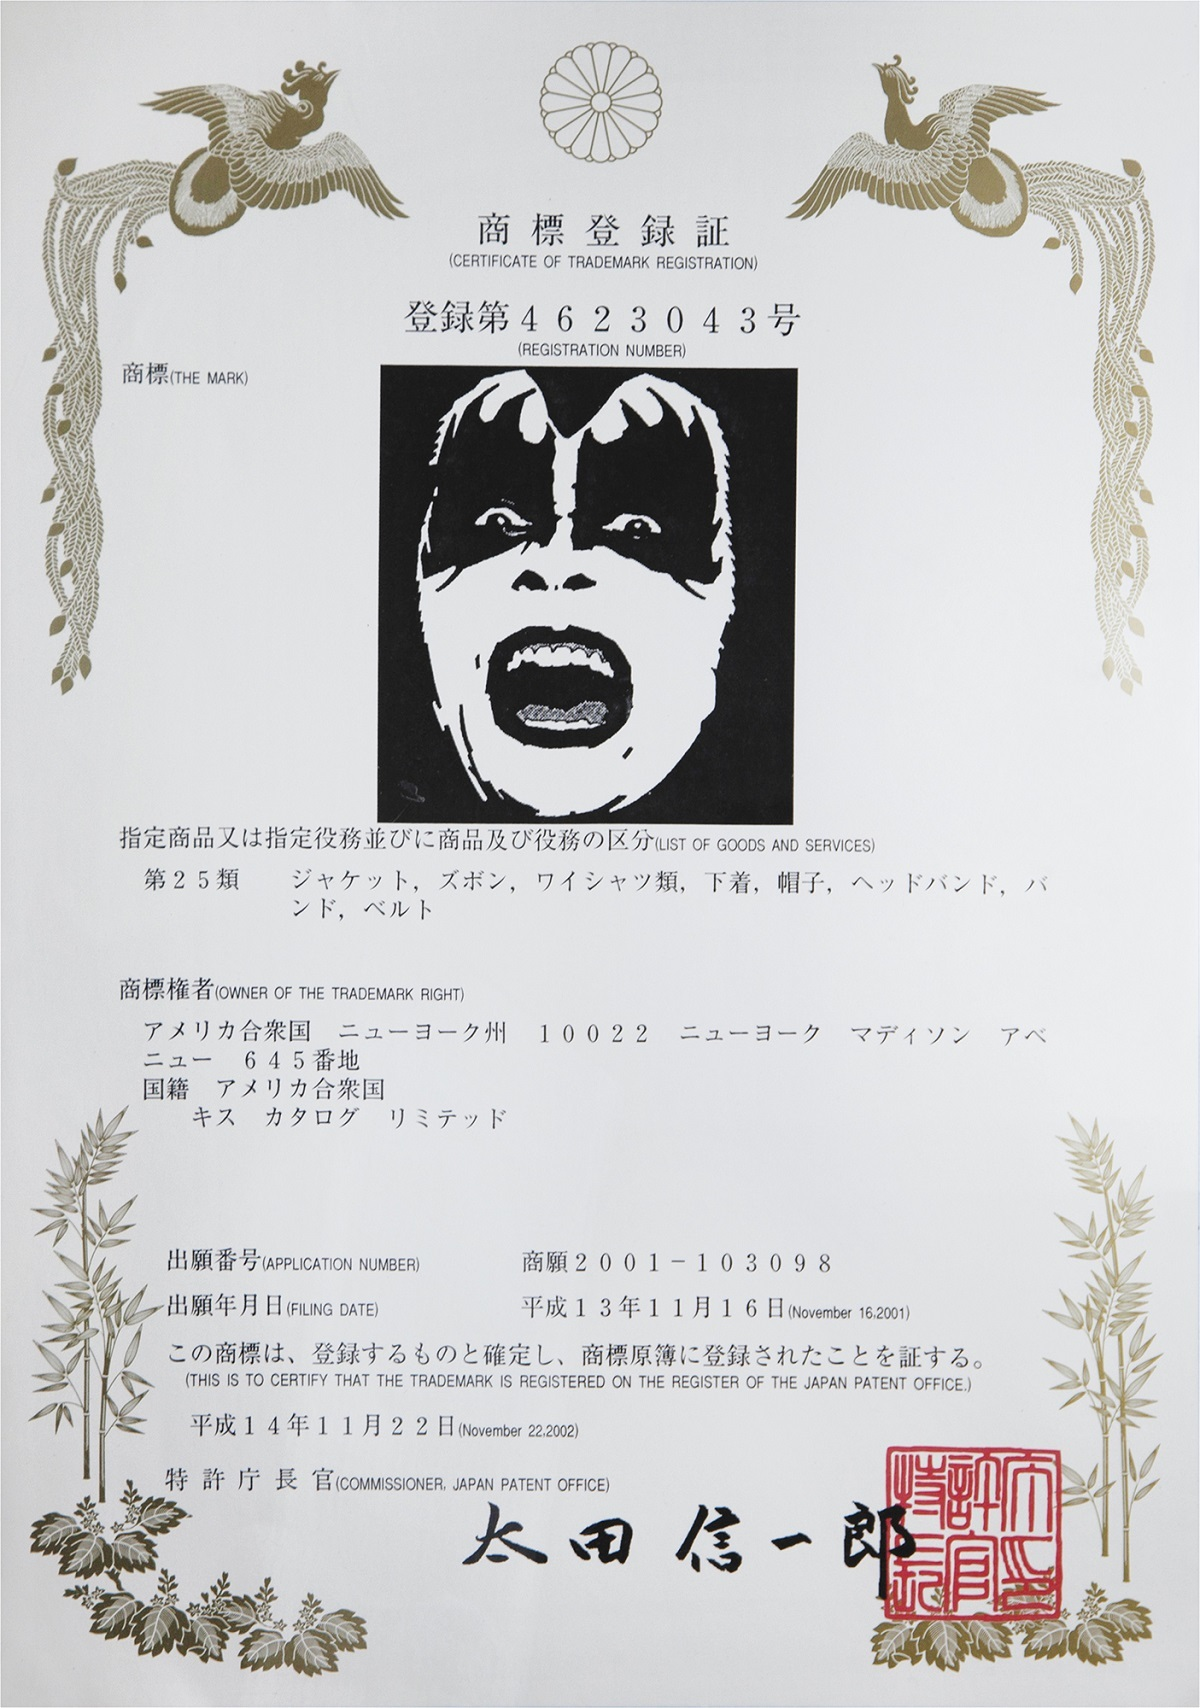 『KISS EXPO TOKYO 2016 ~地獄の博覧会~』展示物 KISSメイクの商標登録証明書